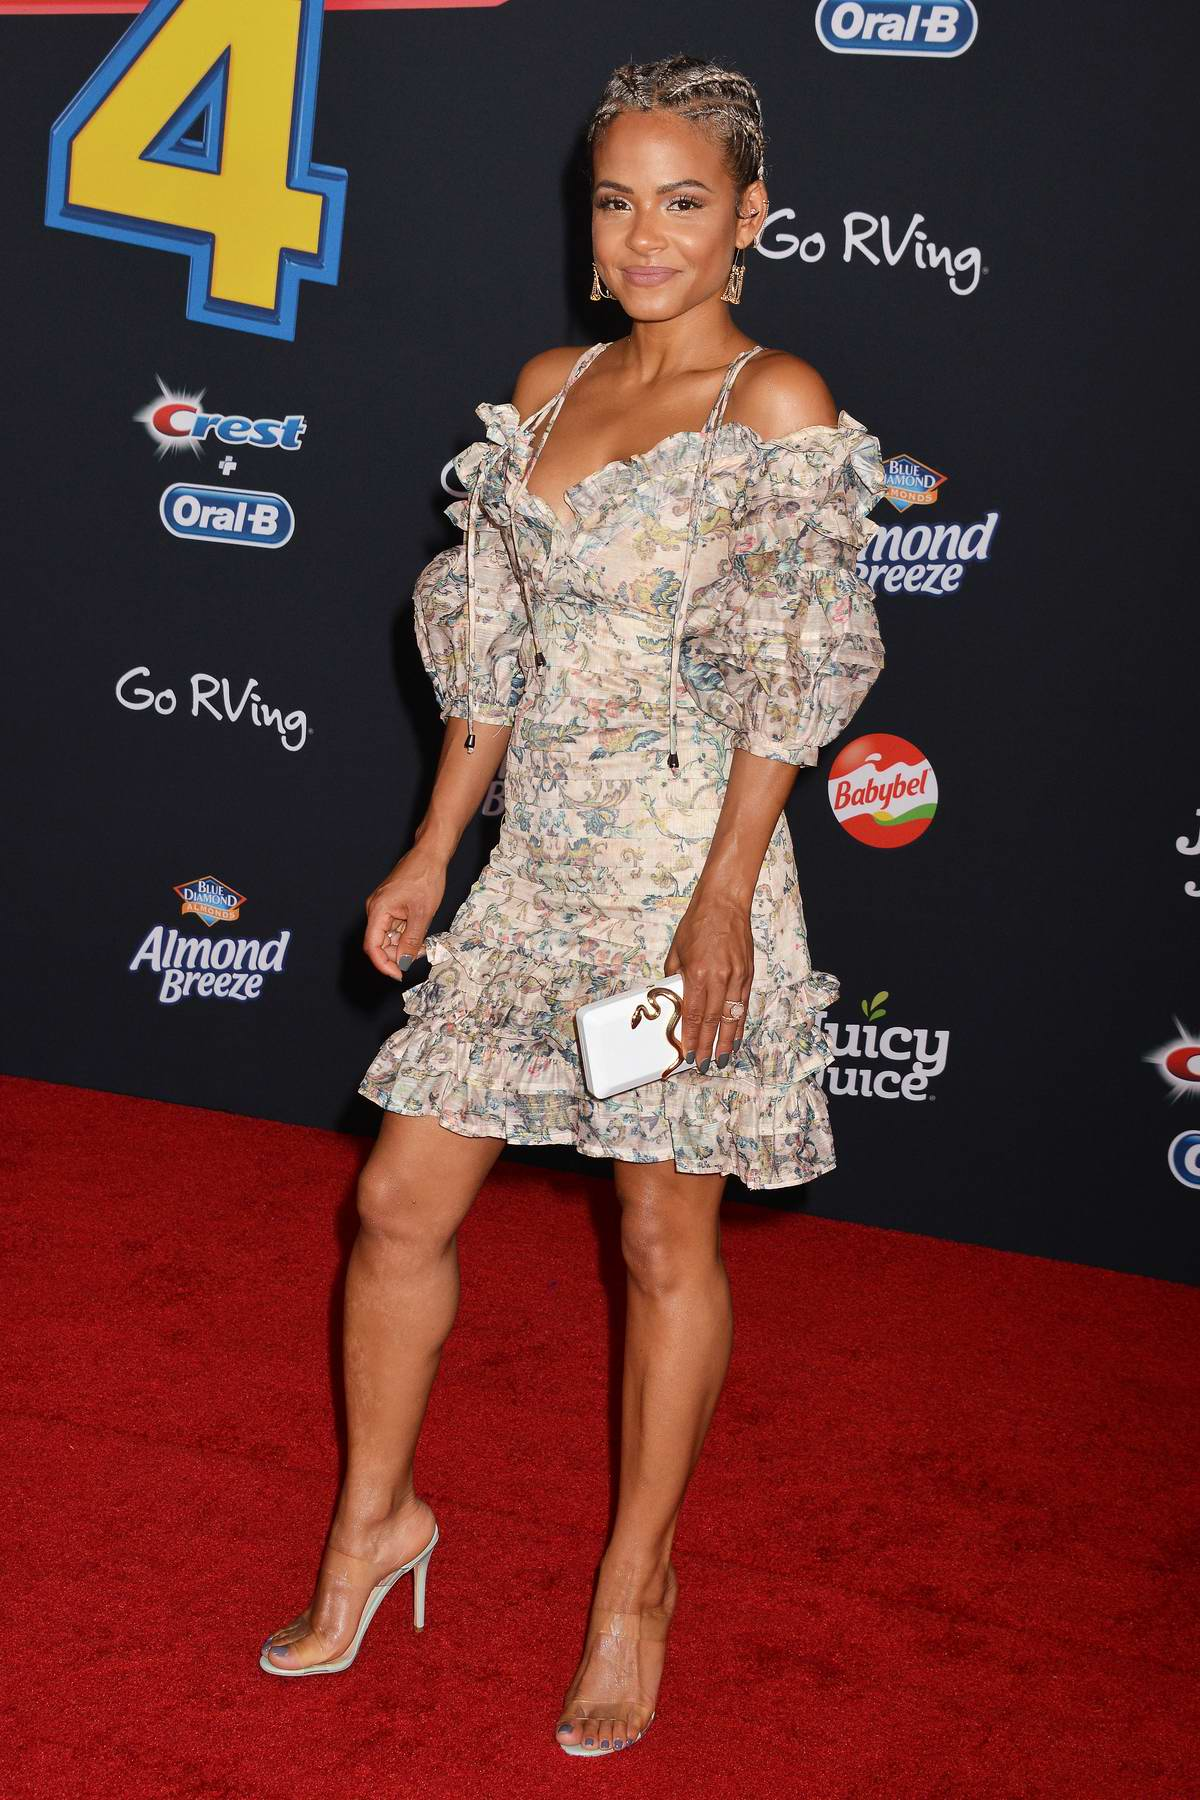 Christina Milian attends the World Premiere of 'Toy Story 4' at the El Capitan Theater in Hollywood, California